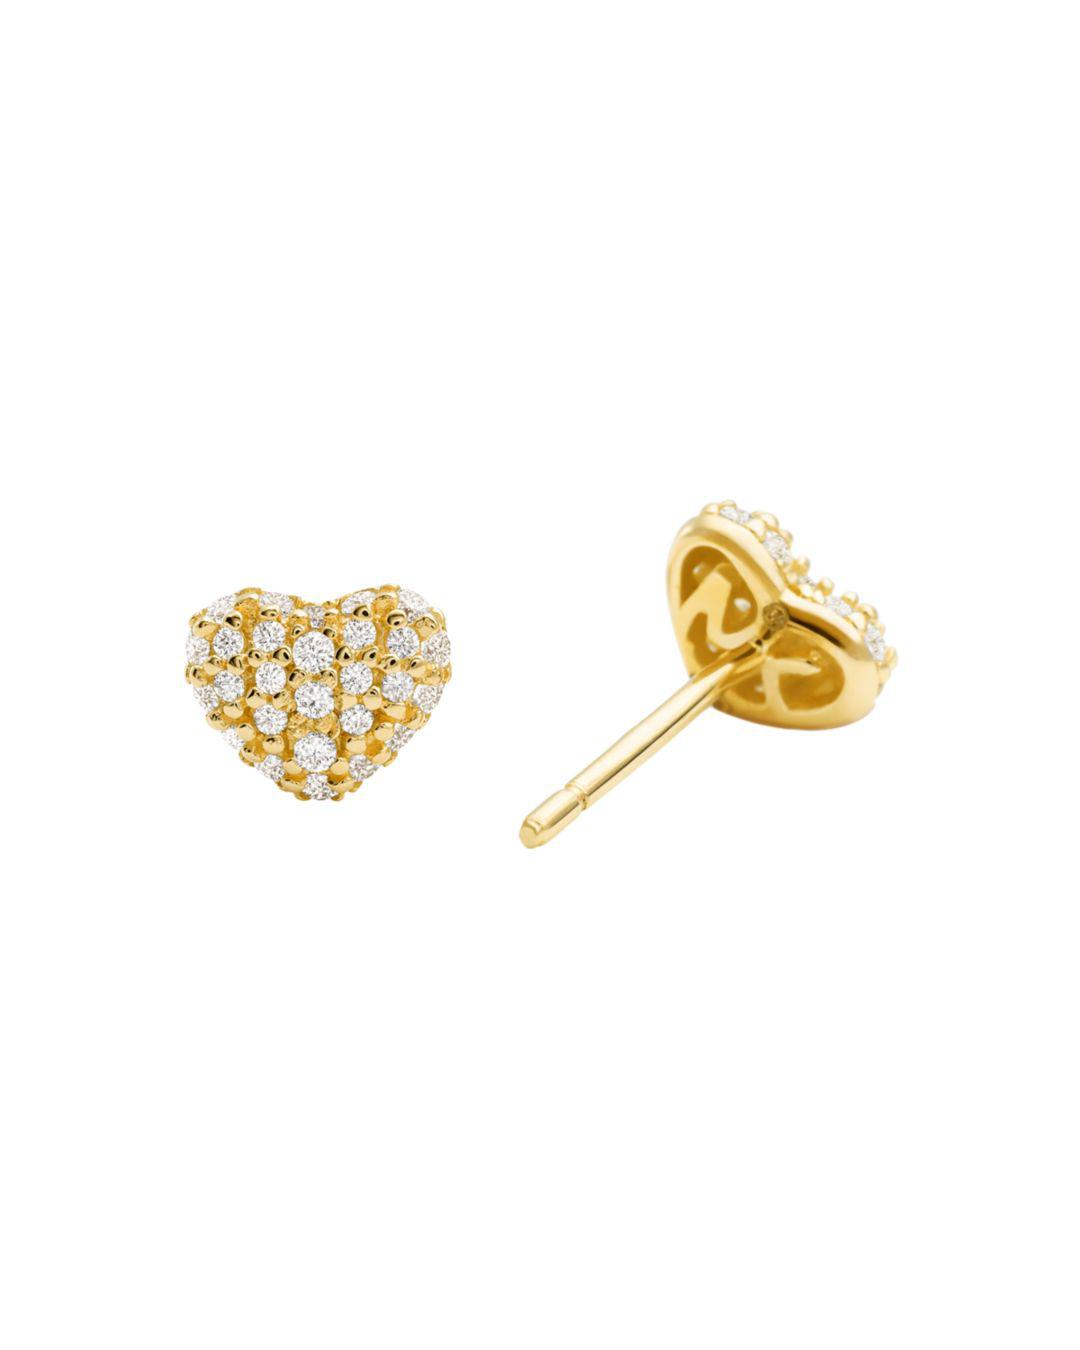 5819e54c8 Lyst - Michael Kors Gold-toned Cubic Zirconia Stud Earrings in Metallic -  Save 3%